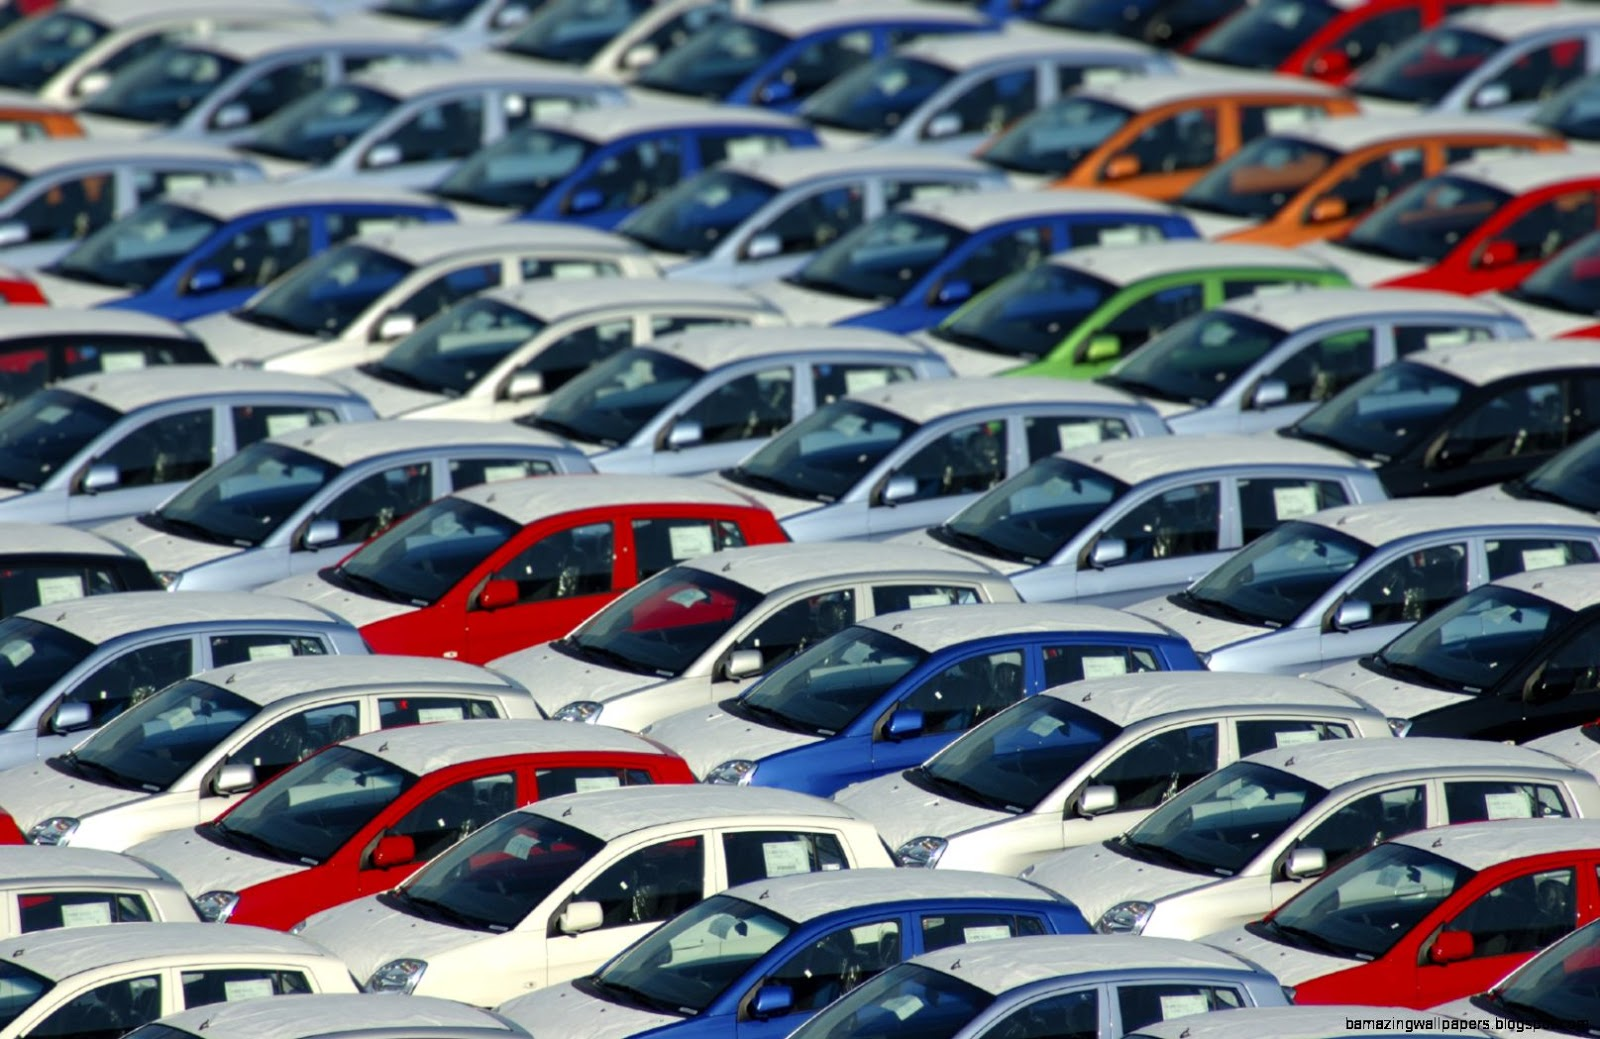 The Best Car Dealer For Buying Used Cars